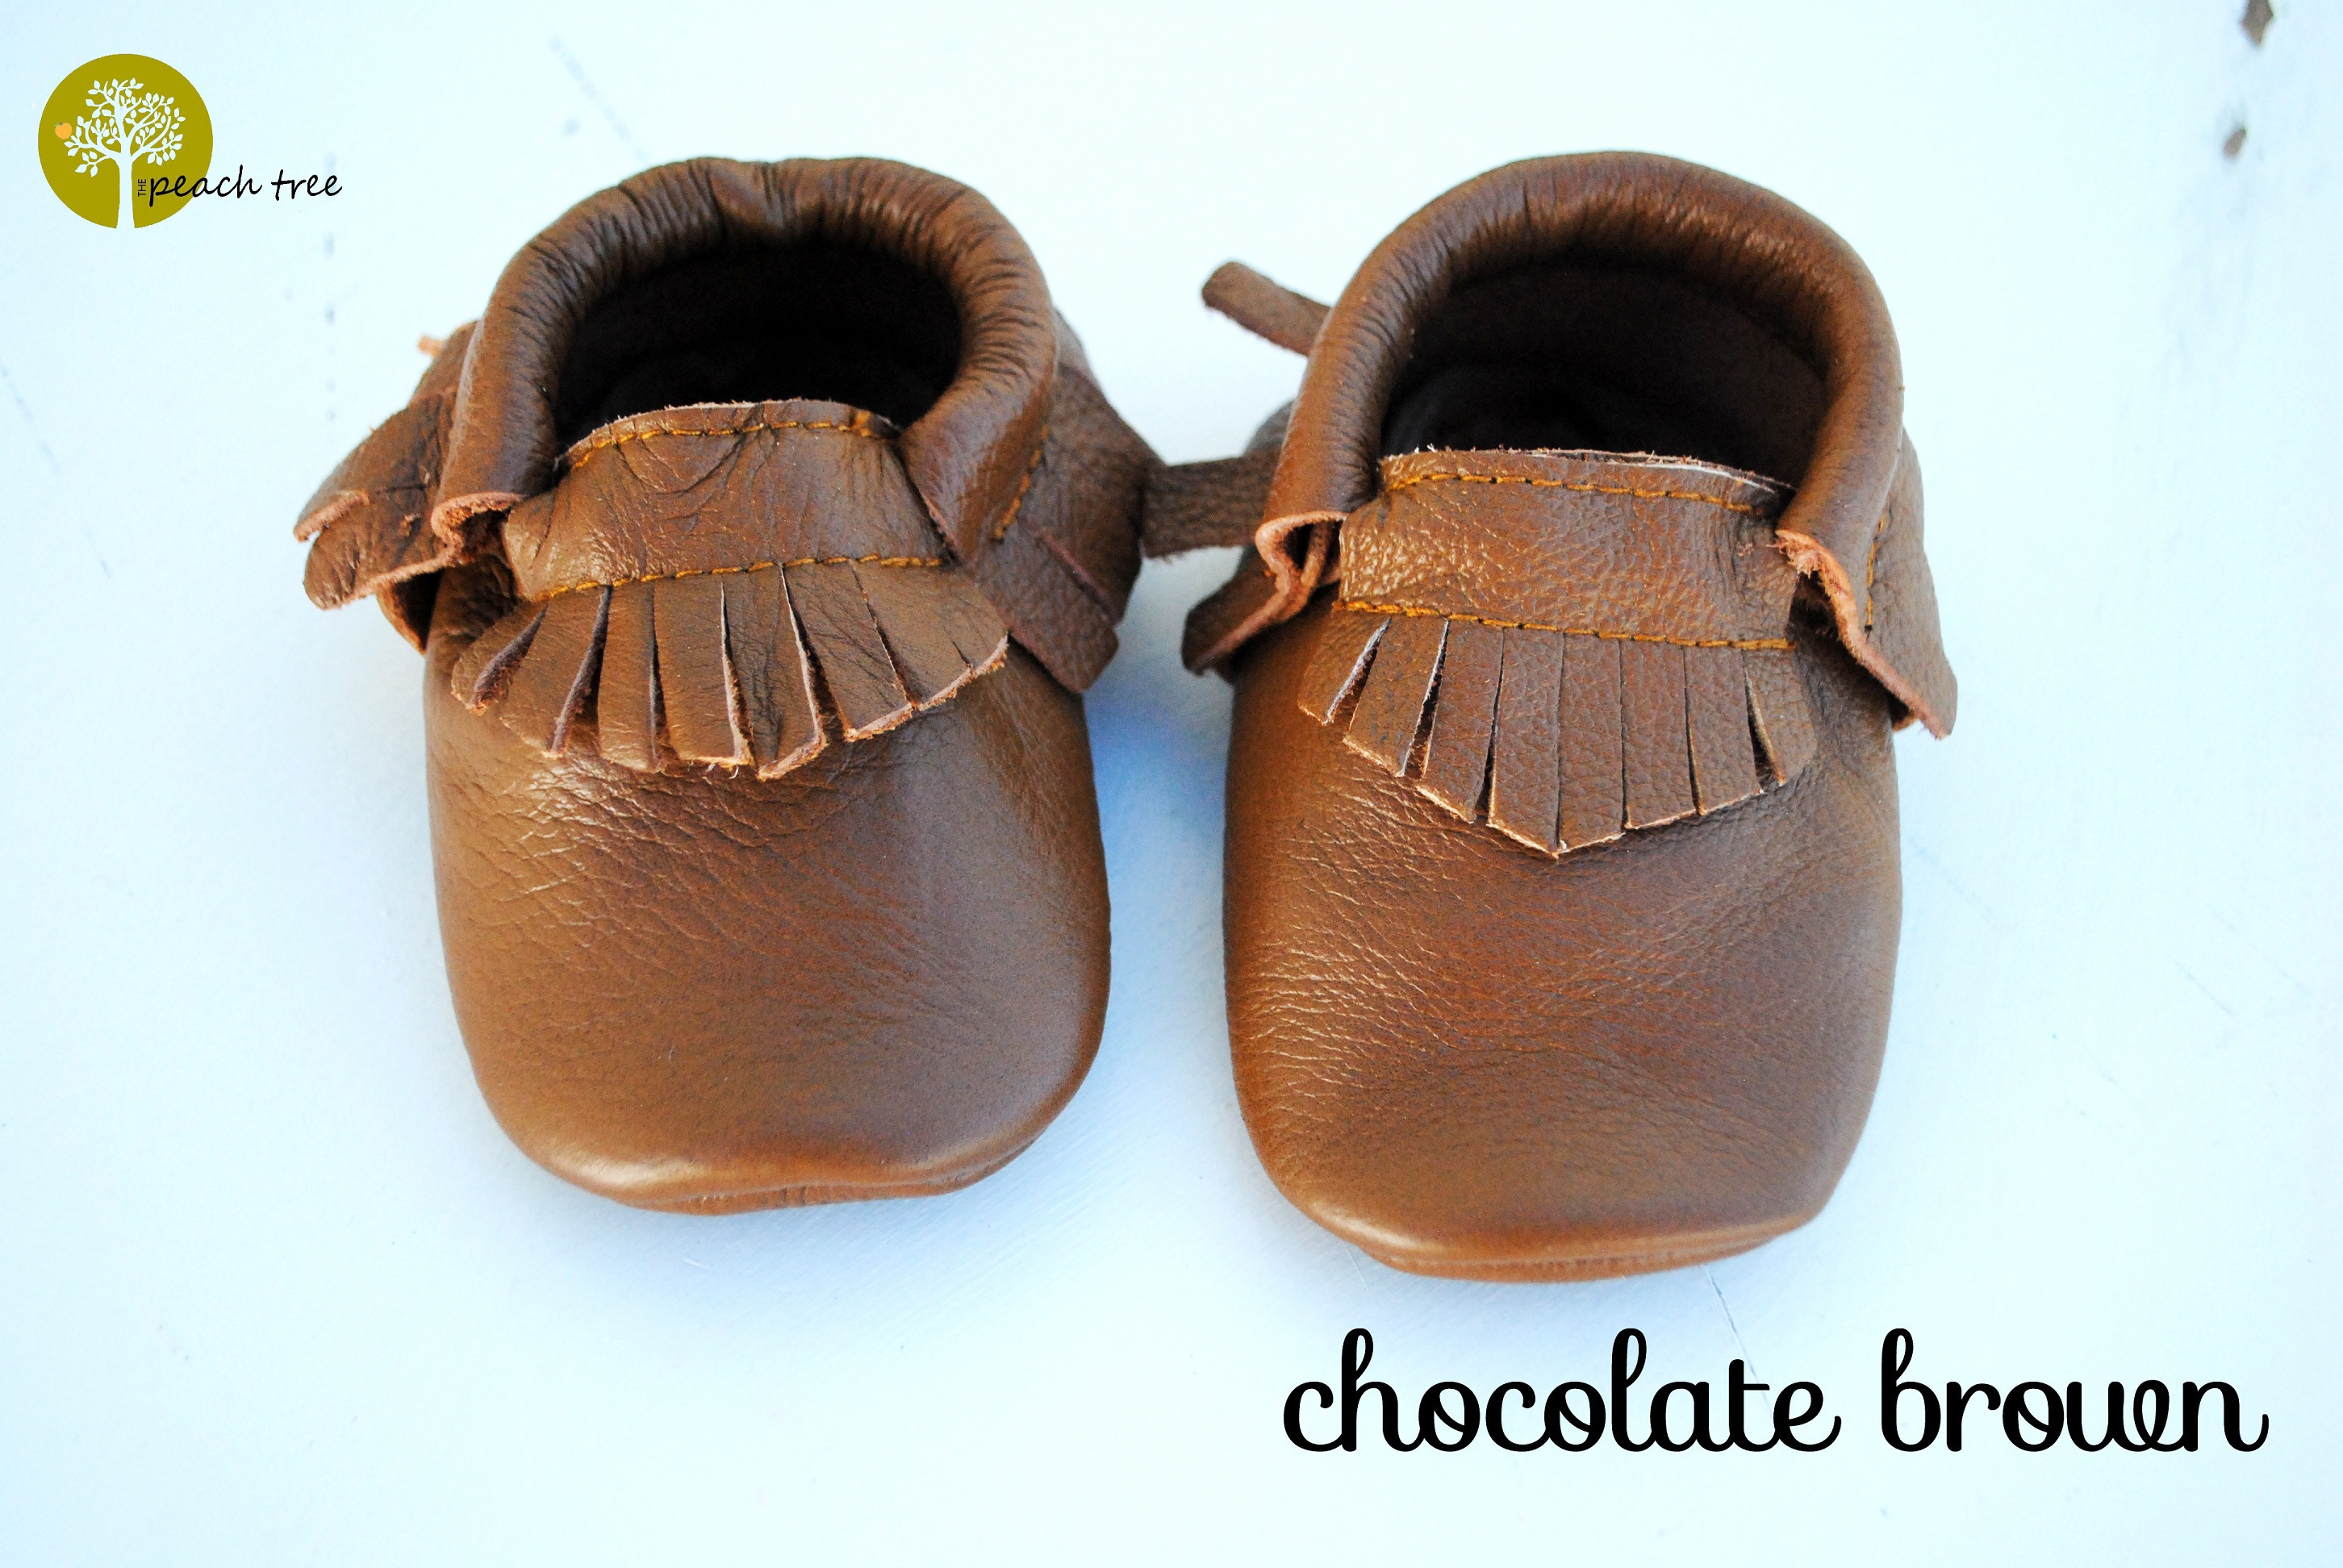 ef3d85f9a30d5 Leather Baby Moccasins Chocolate Brown from The Peach Tree BC